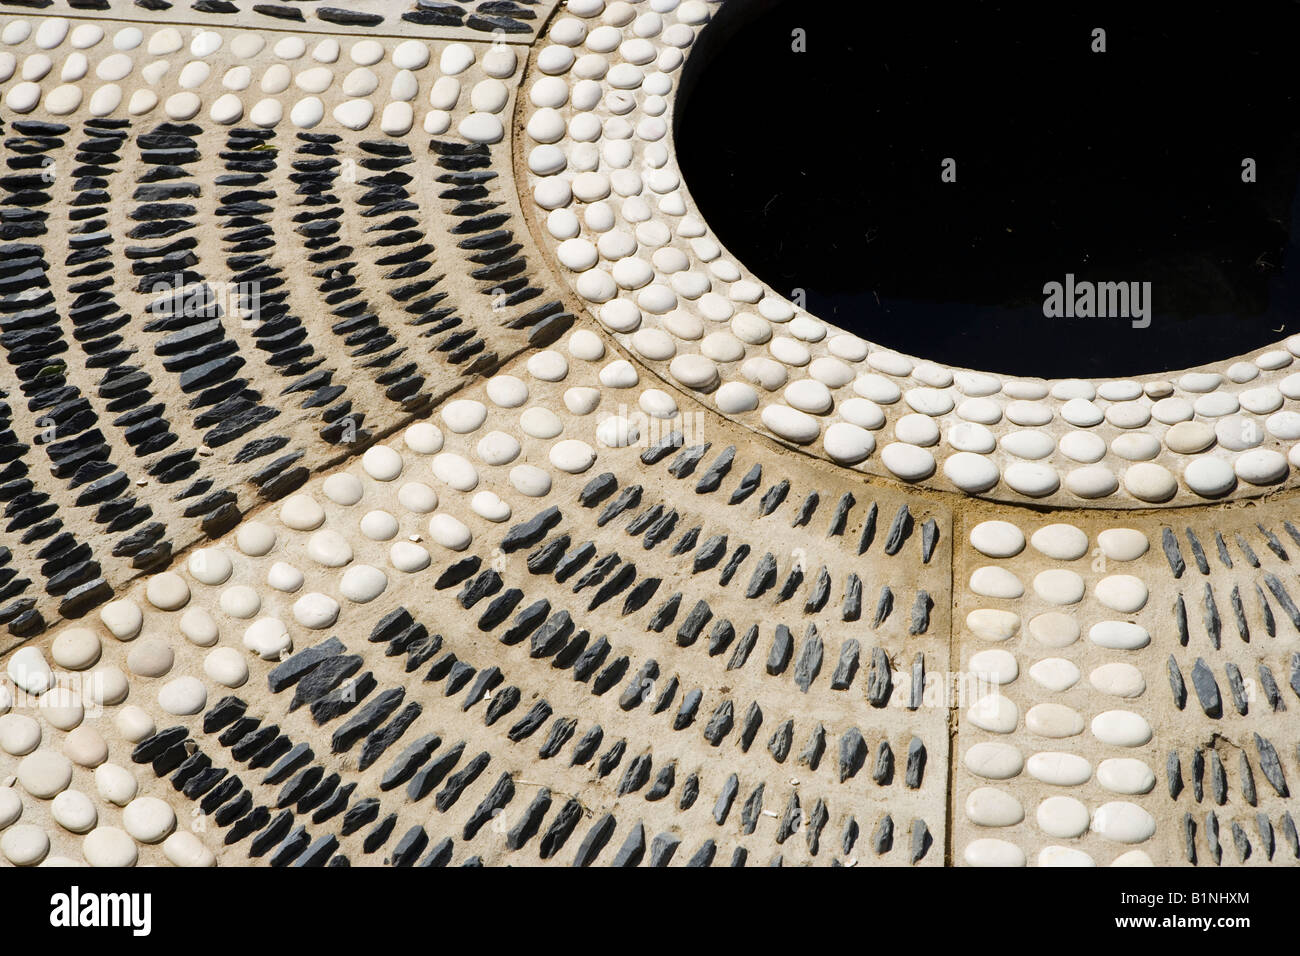 Stock Photo   Circular Patio Inlaid With Pebbles And Stones